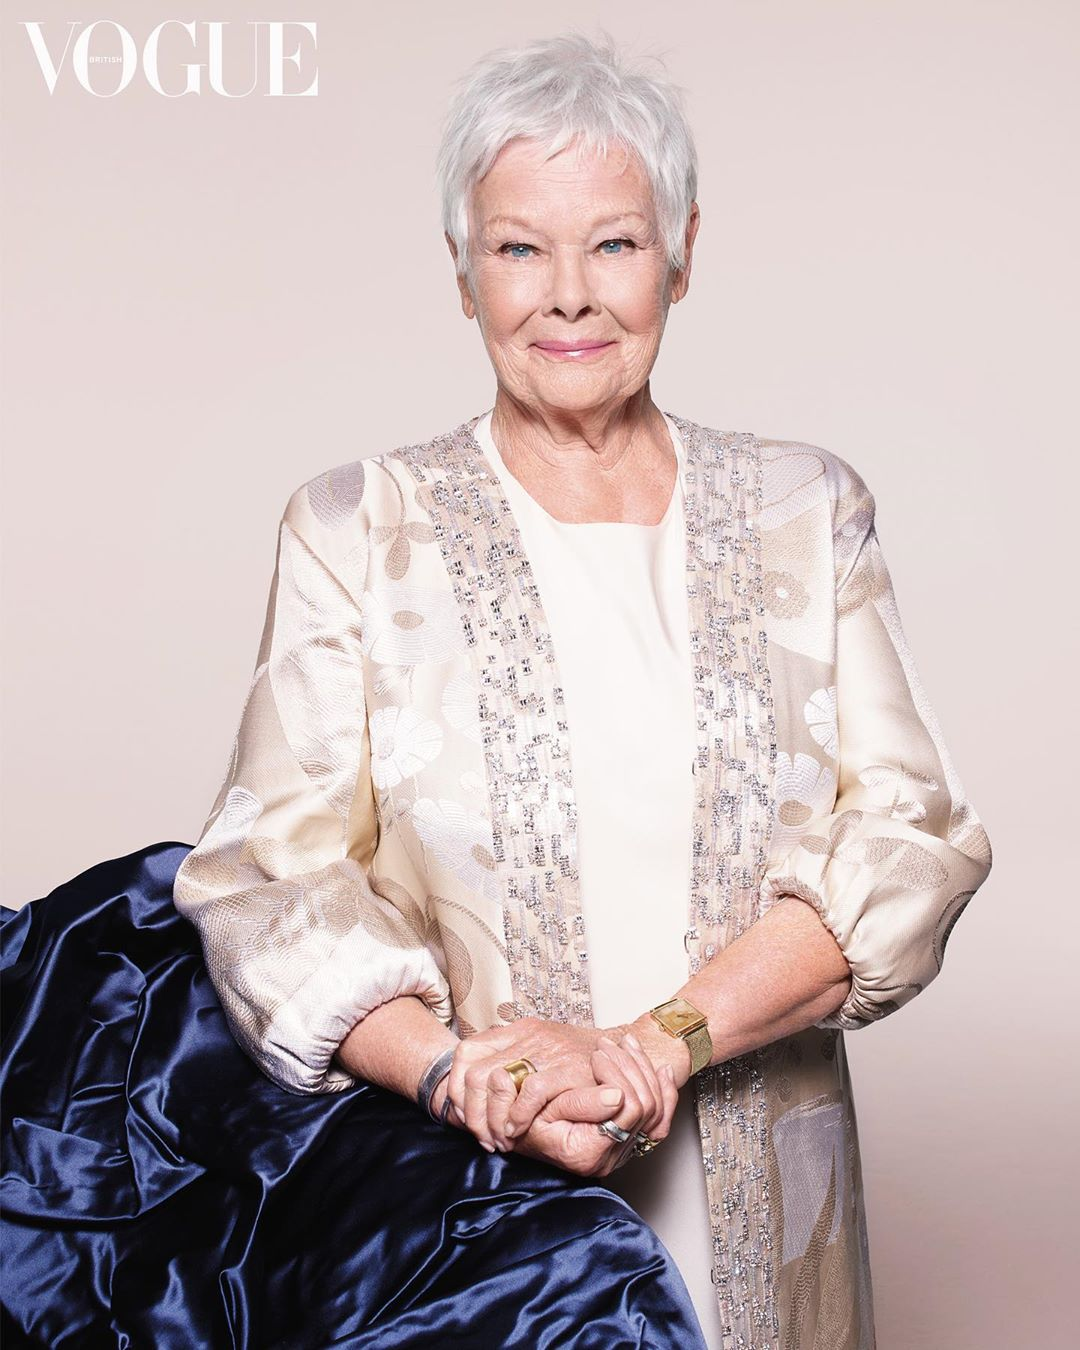 In uncertain times, Dame Judi Dench is comfort personified.